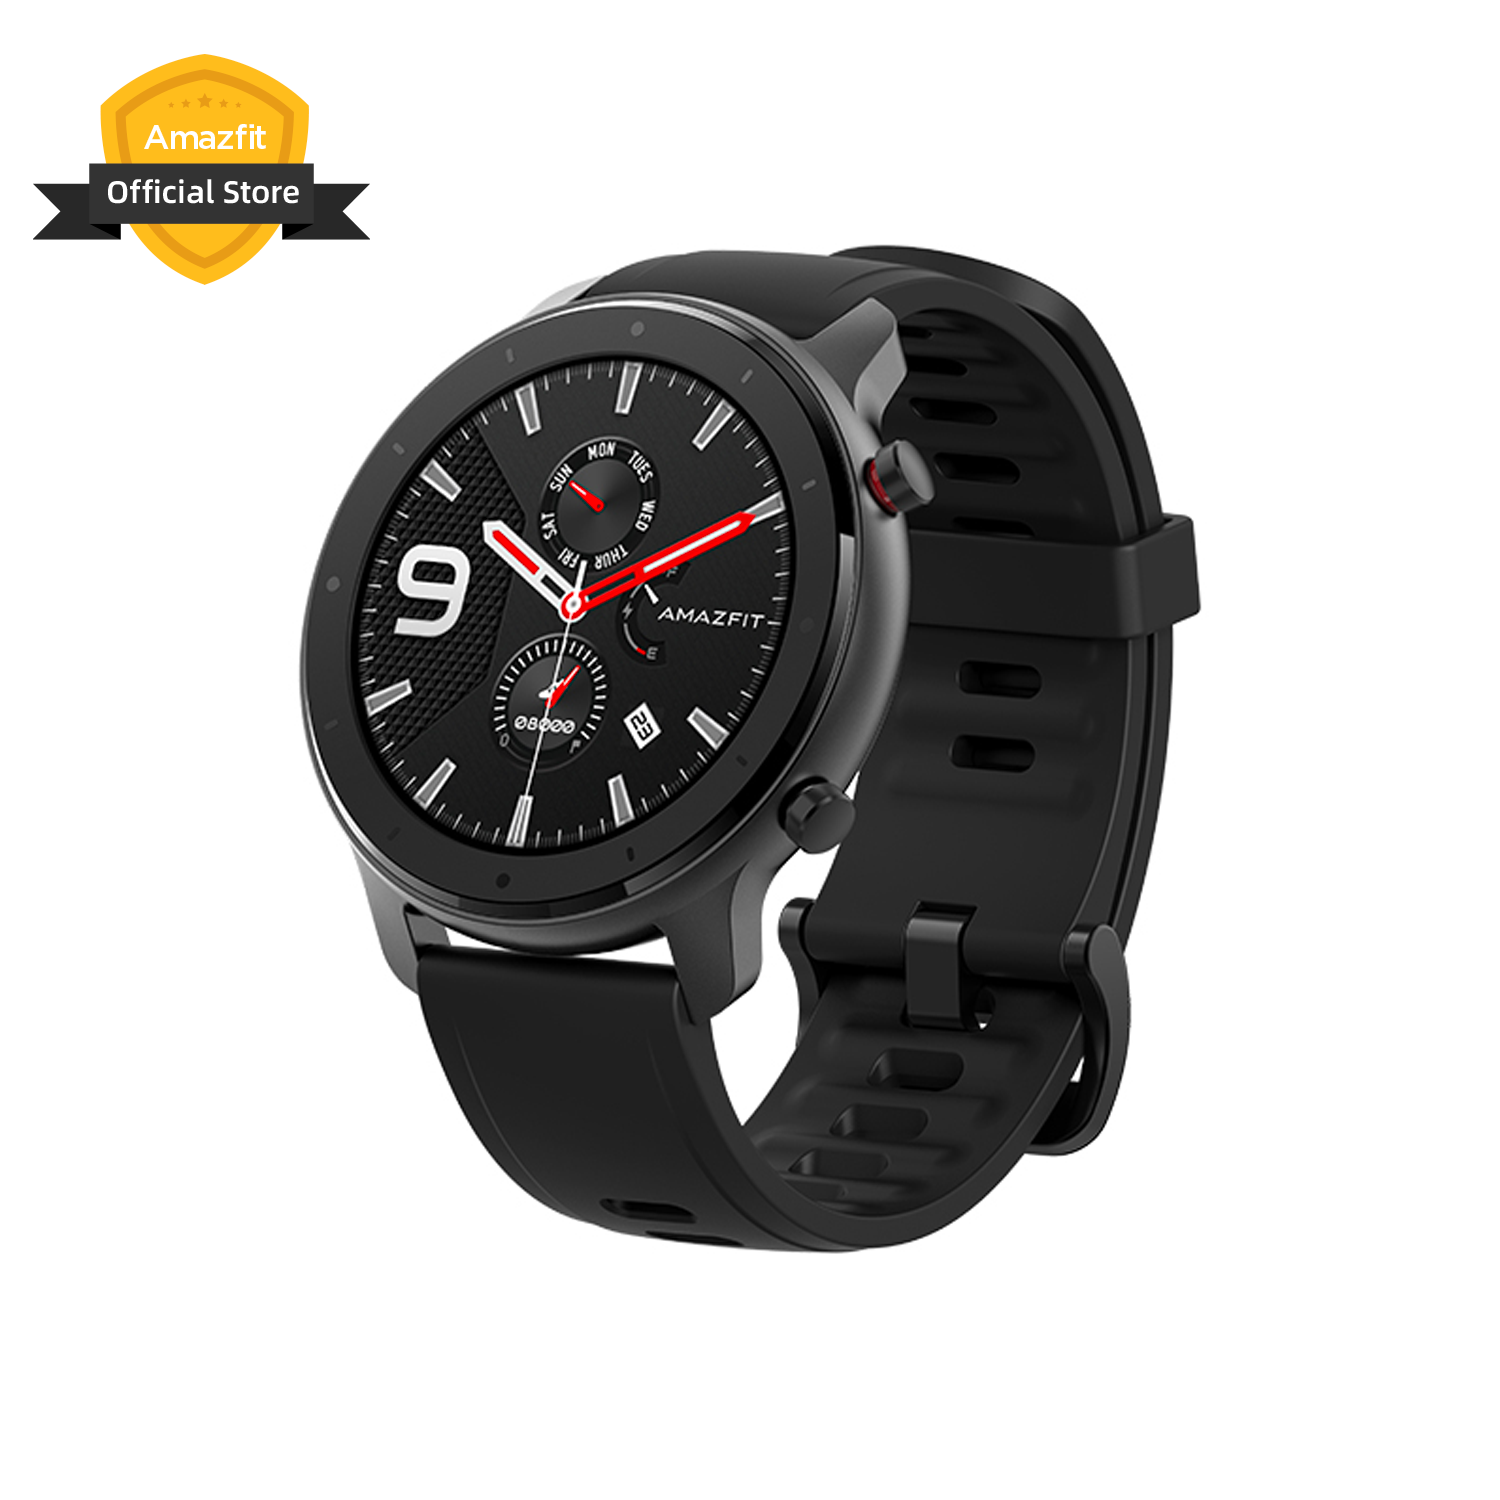 In Stock Amazfit GTR 47mm Lite Smart Watch 5ATM Silicone Strap Smartwatch 24 Days Battery For Android Ios Phone